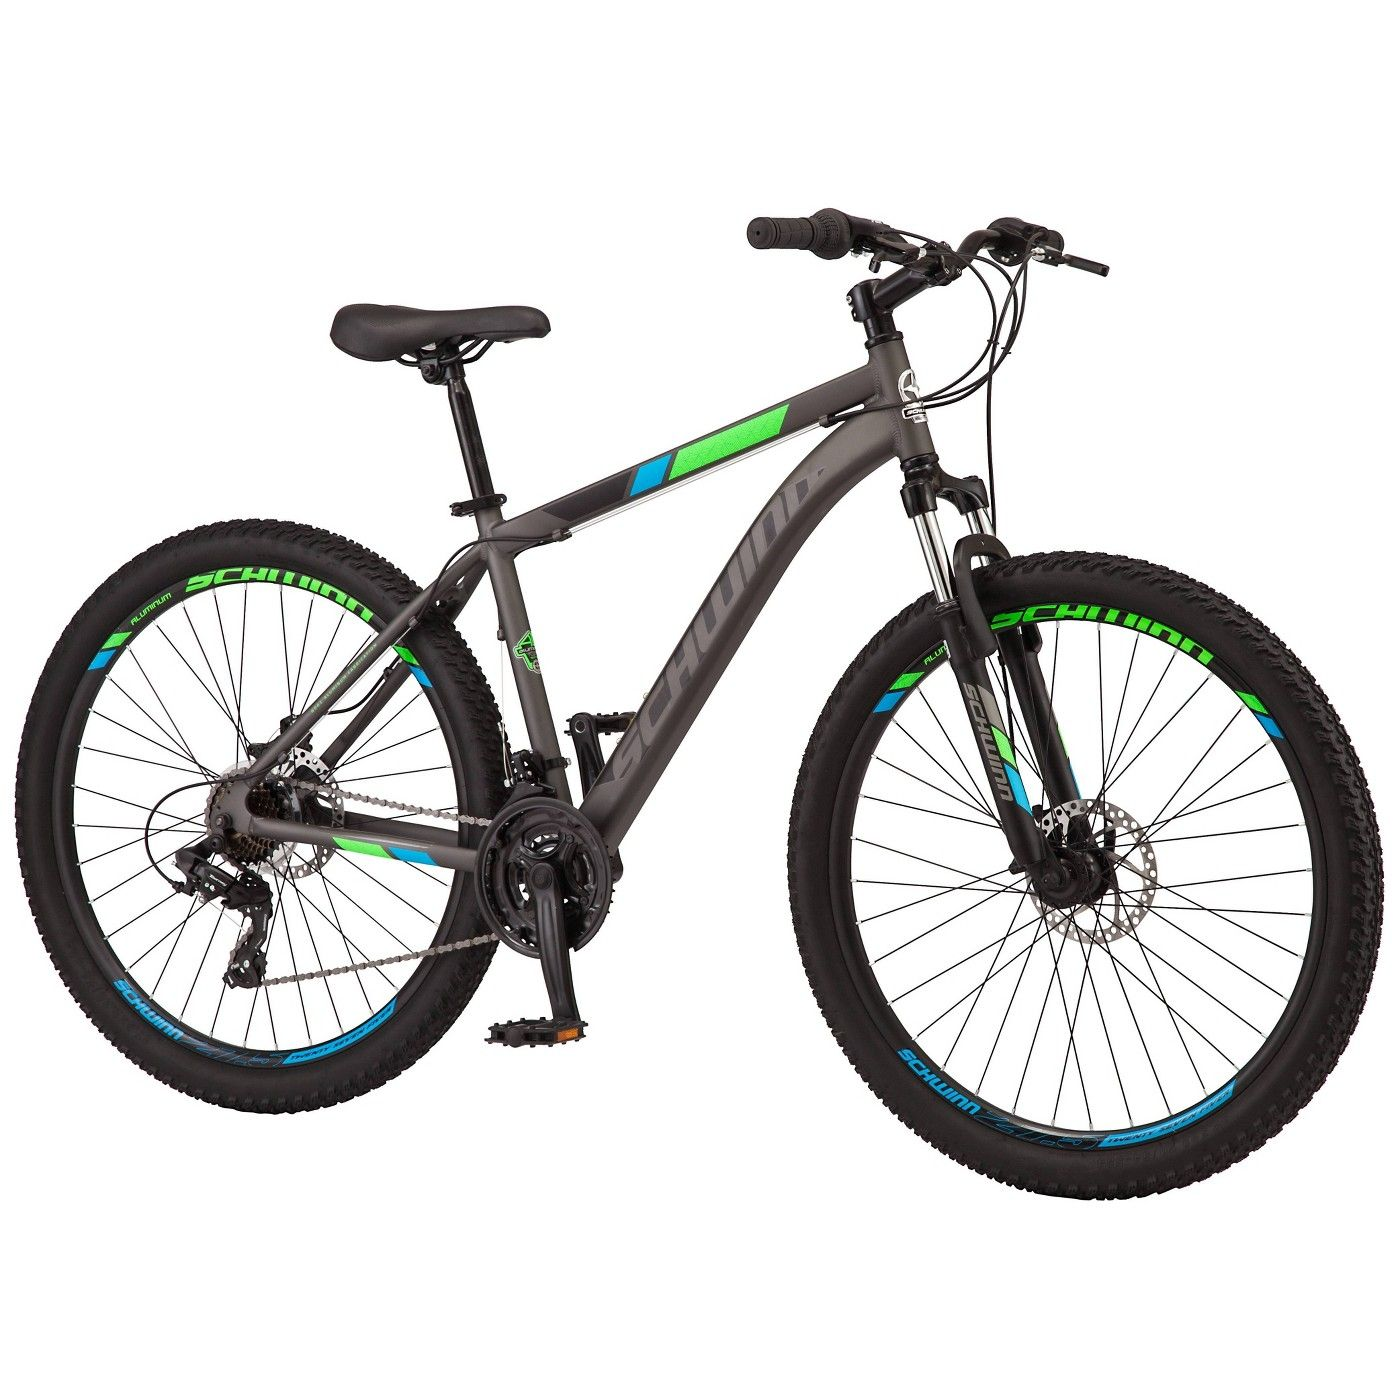 Schwinn Men S 27 5 Mountain Bike Gray Schwinn Best Mountain Bikes Schwinn Bike